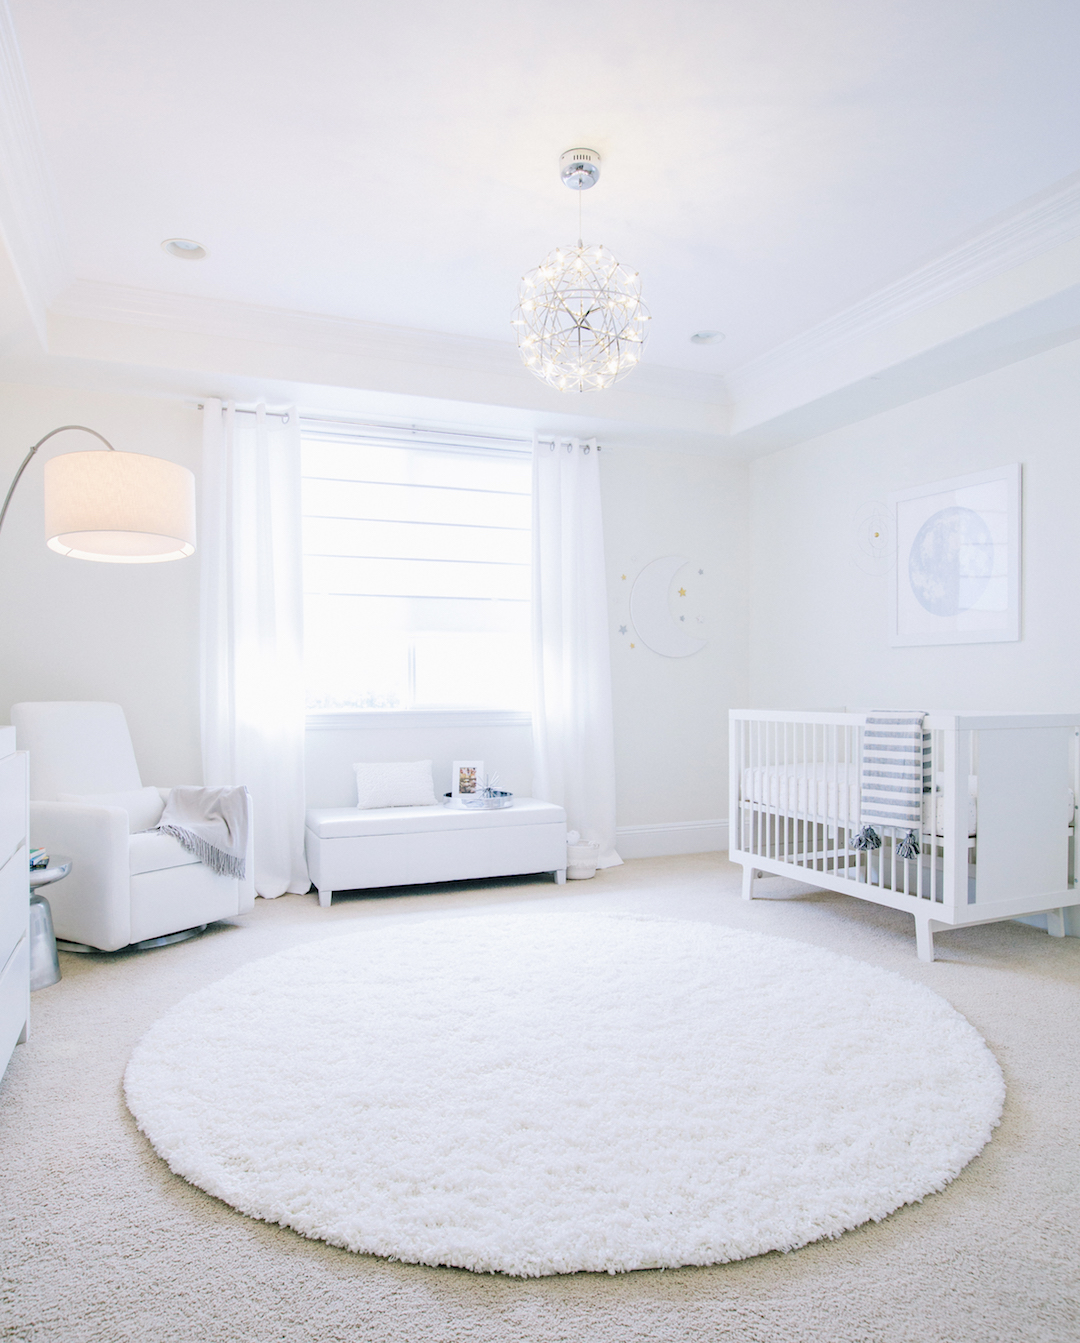 All White Celestial Nursery Design by Little Crown Interiors